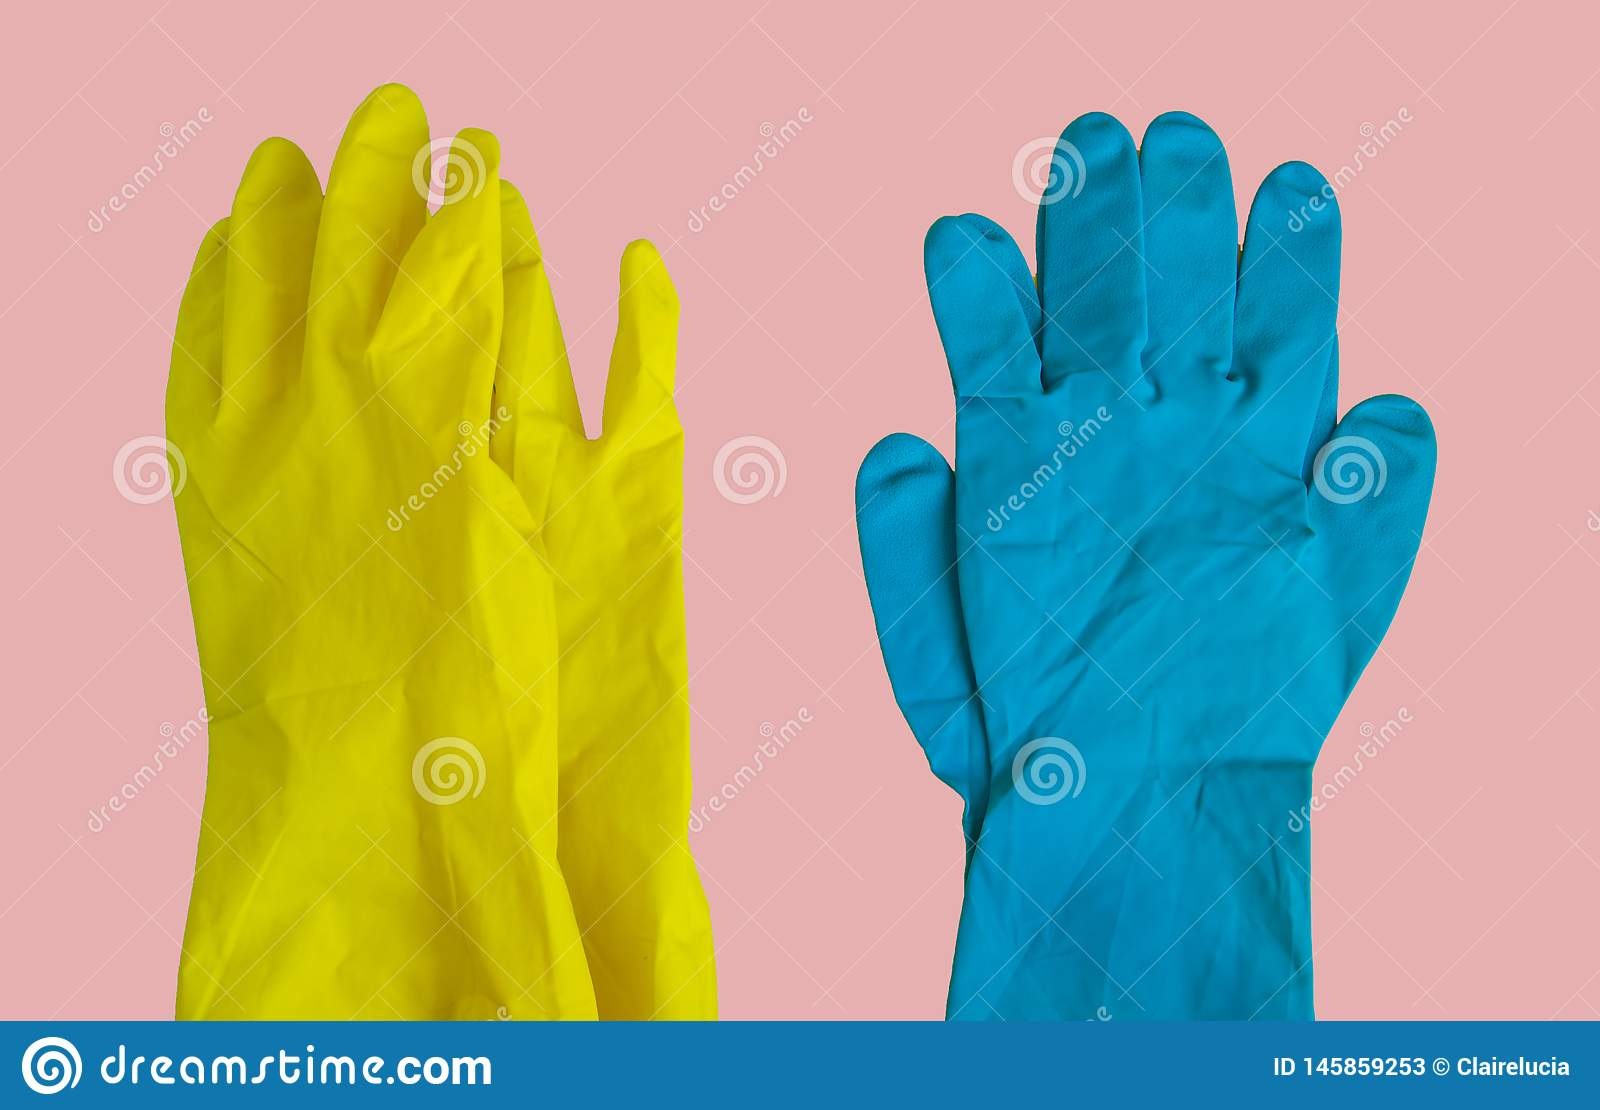 Top view of yellow and blue rubber protective gloves on pink table for spring or daily cleaning. The concept of a commercial